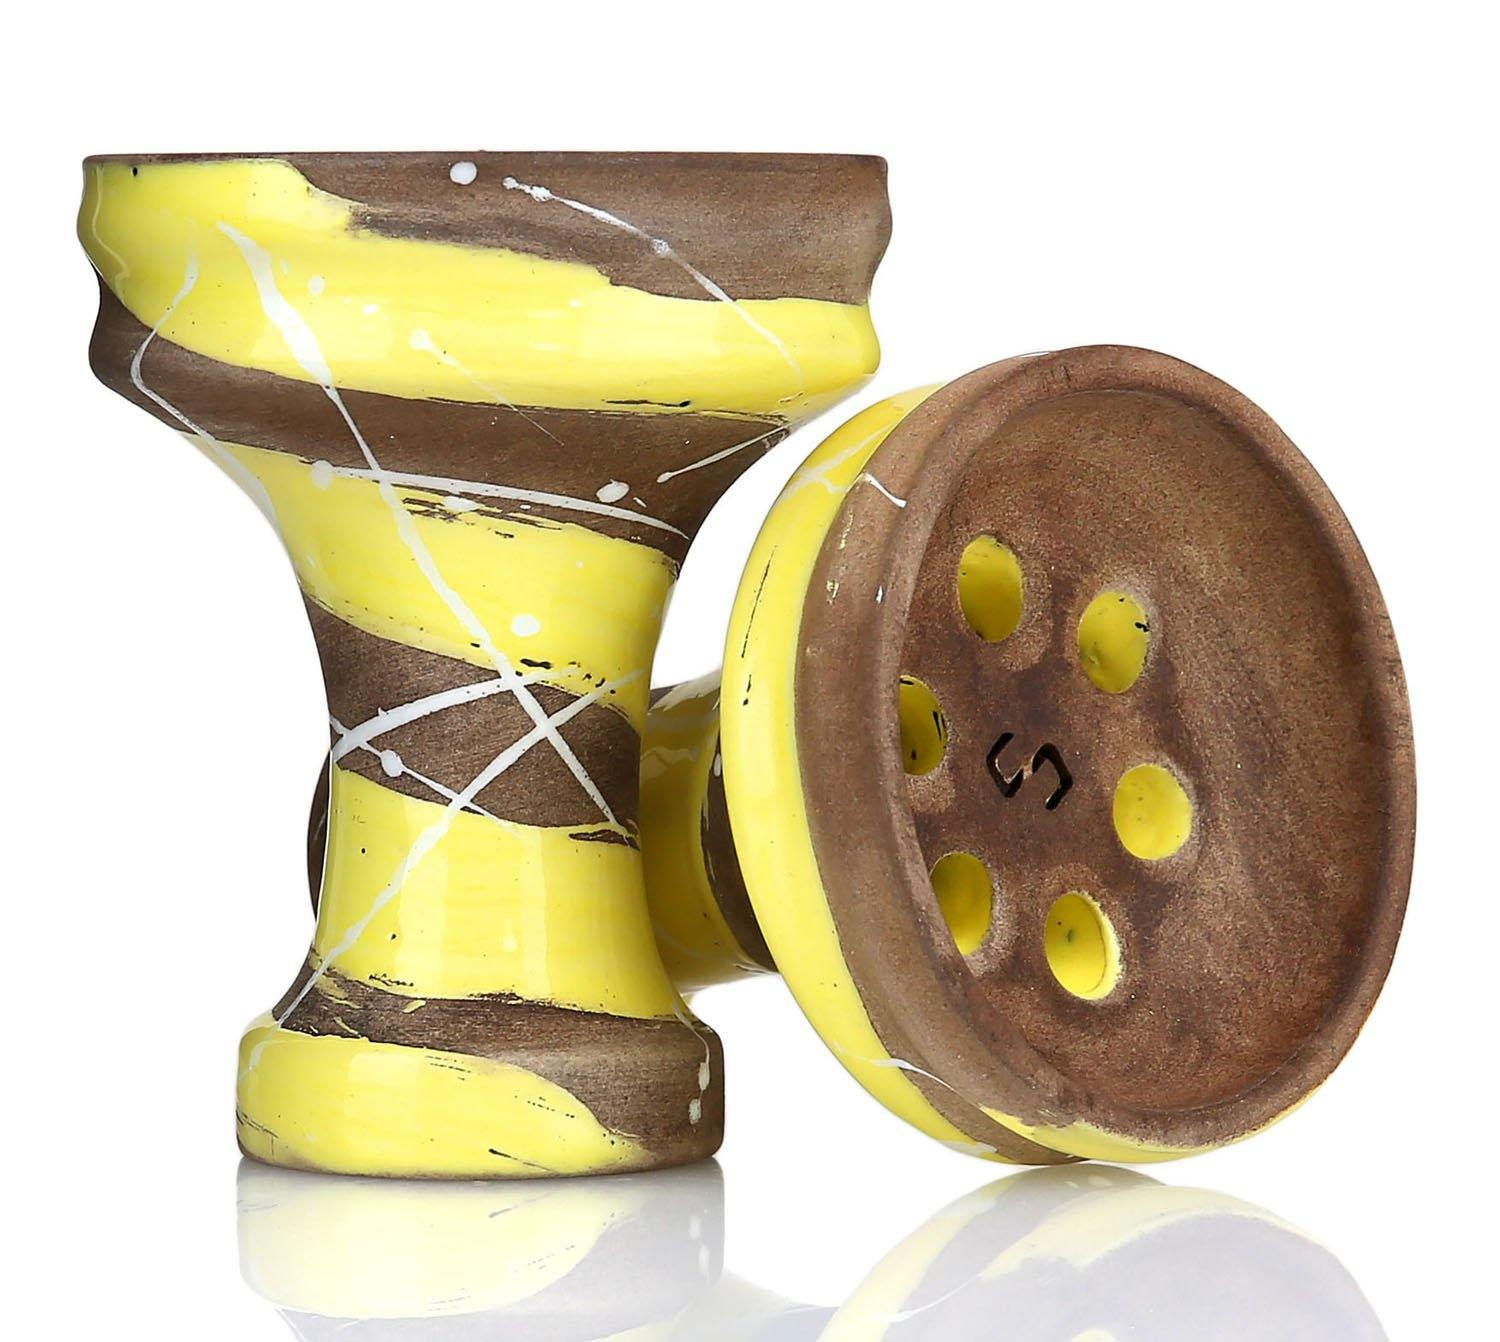 Conceptic Design Killer Shisha Bowl - Yellow - shishagear - UK